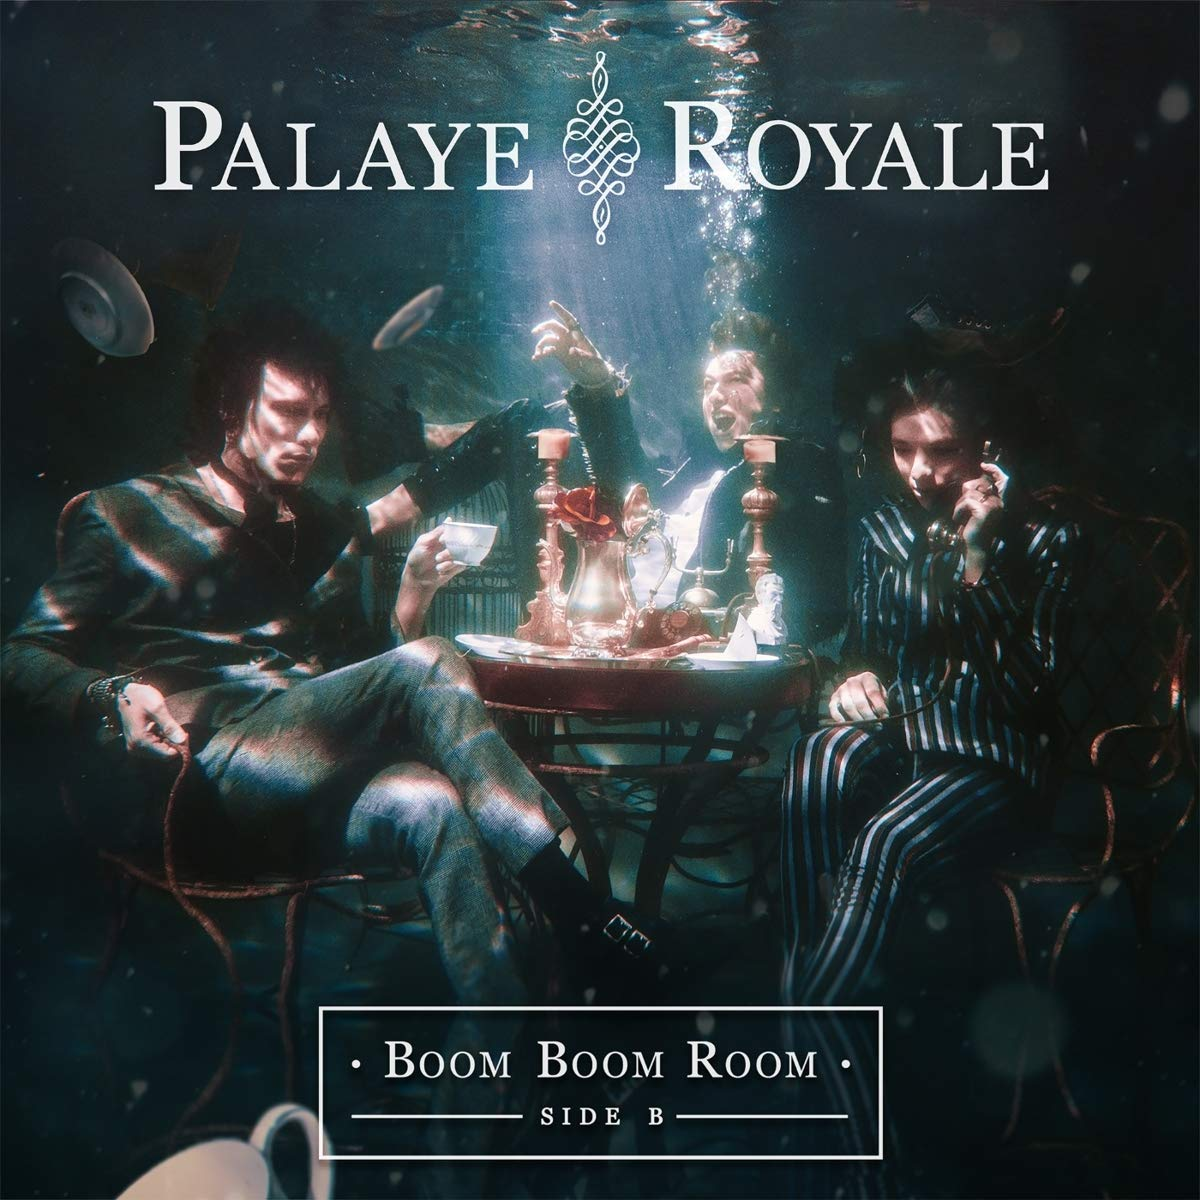 CD : Palaye Royale - Boom Boom Room (side B) (CD)